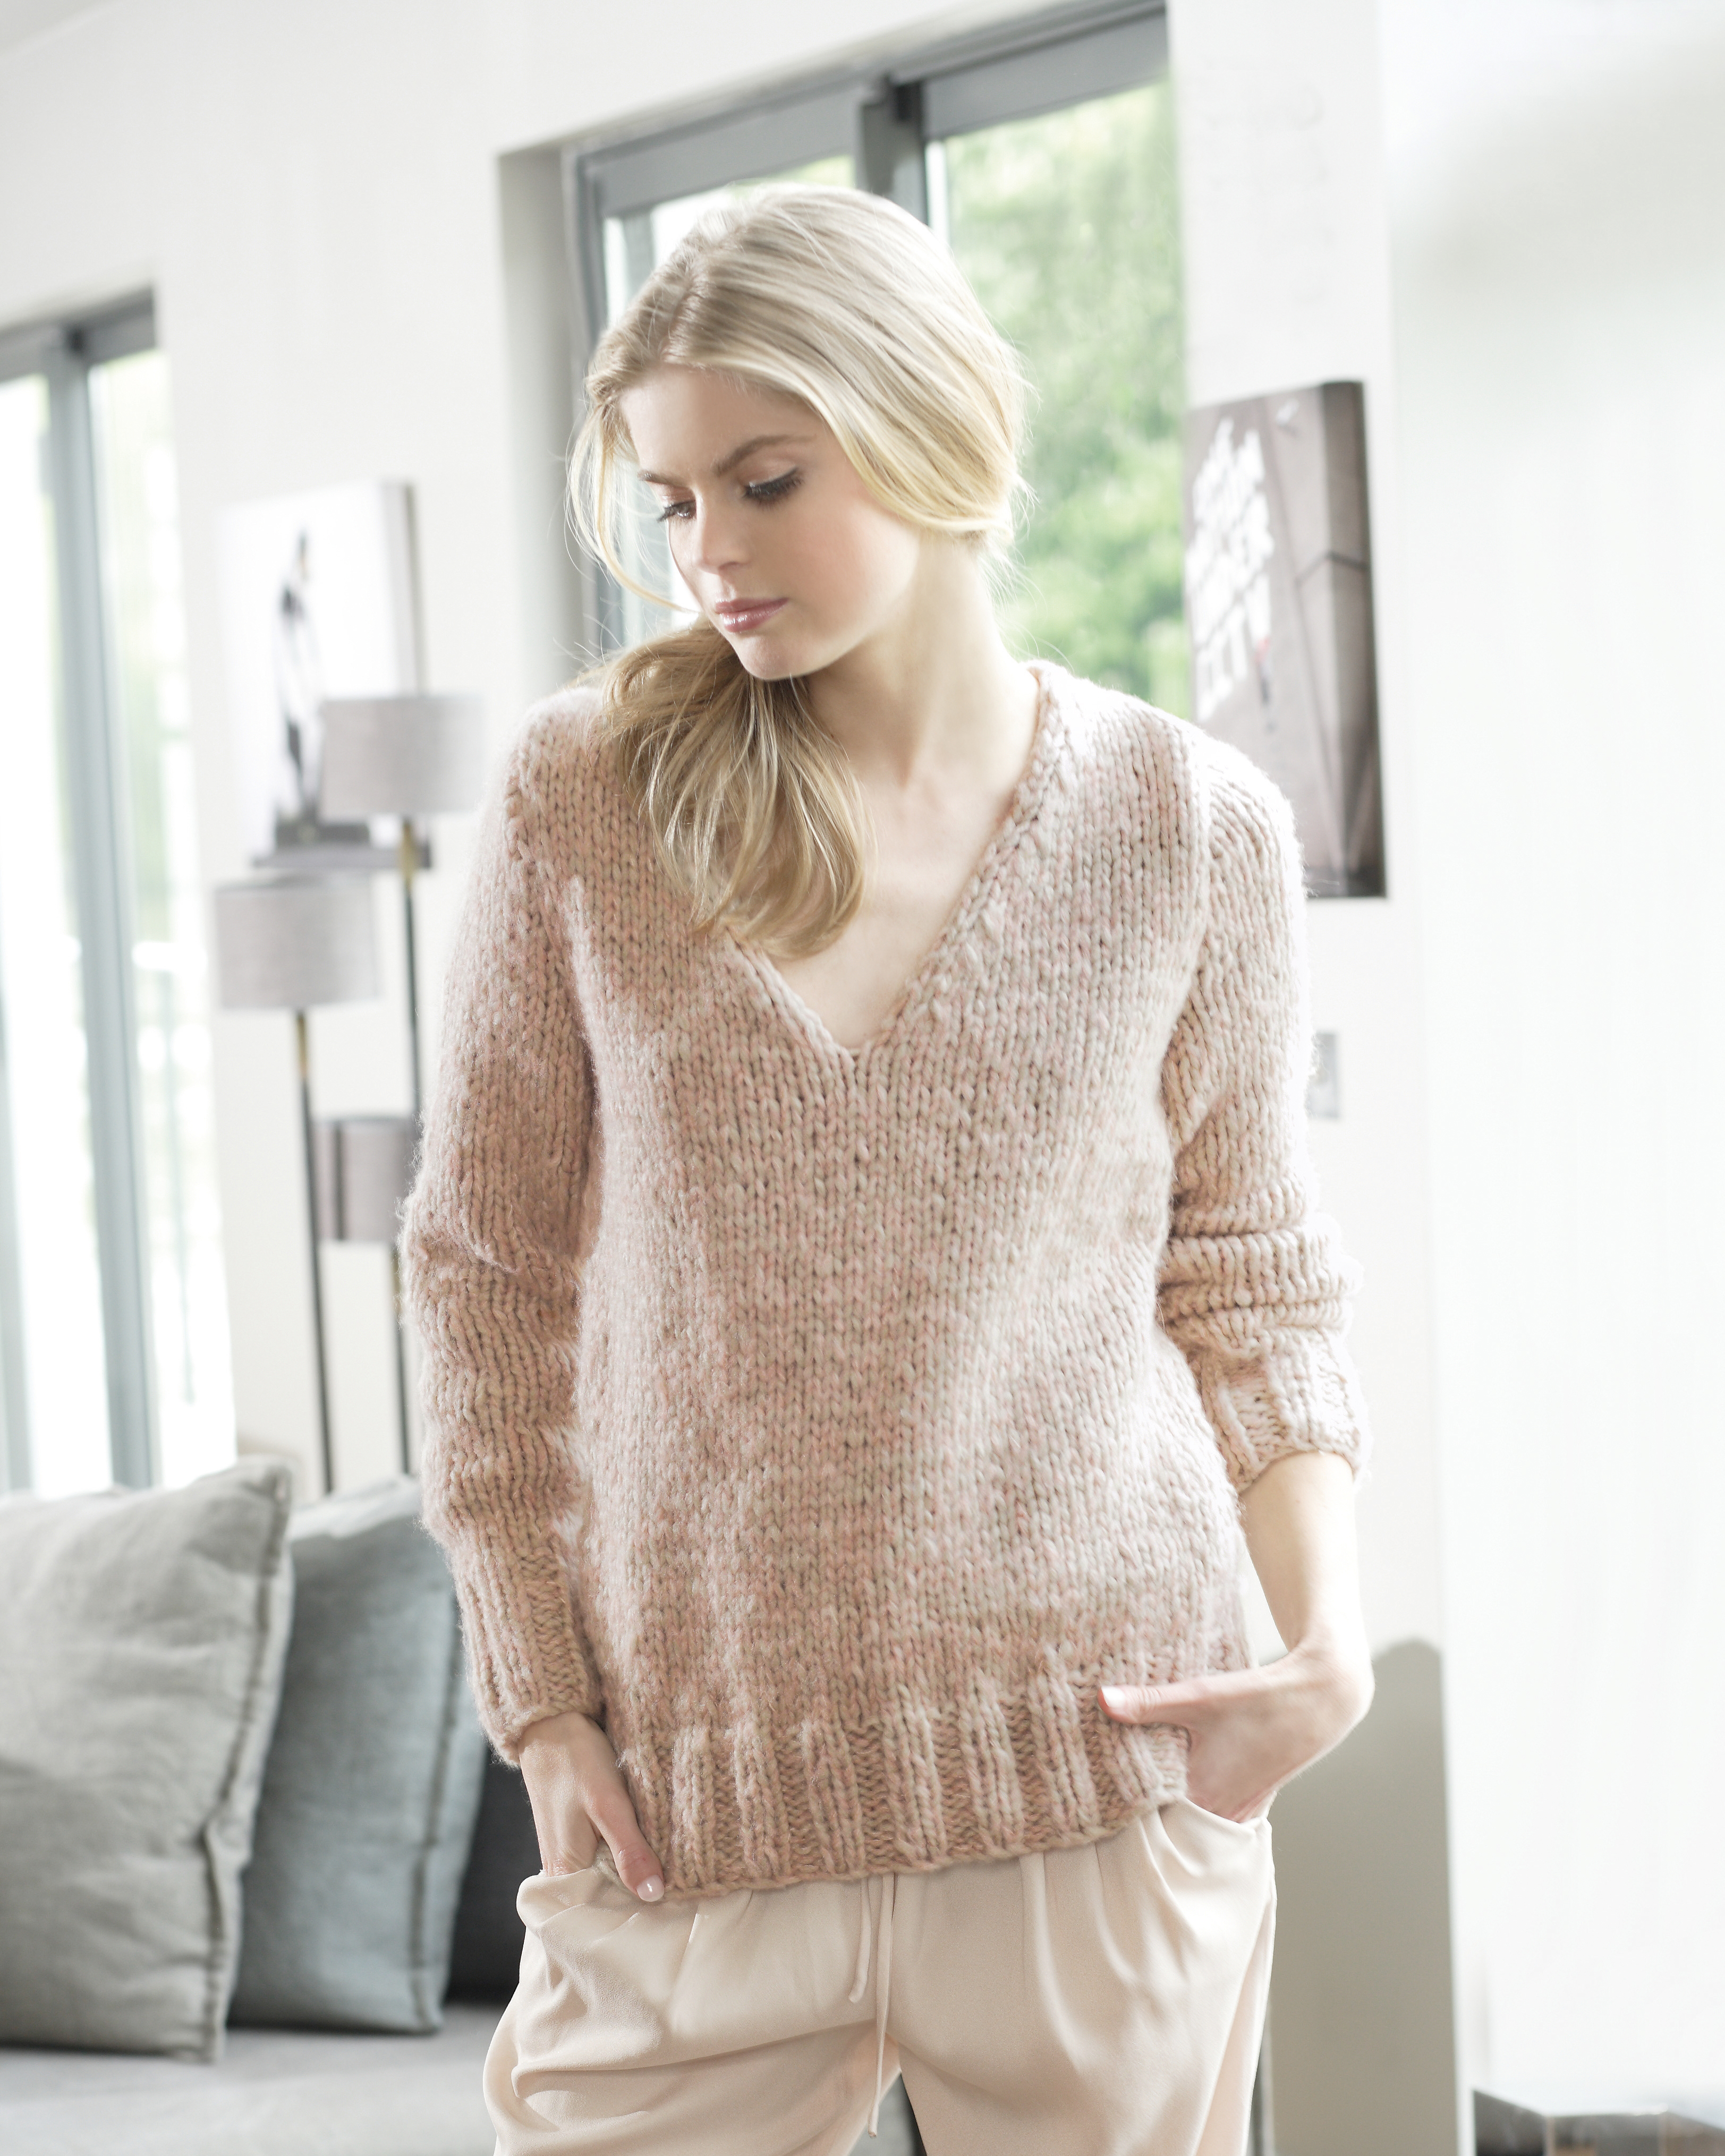 Tricot pull femme aiguille 5